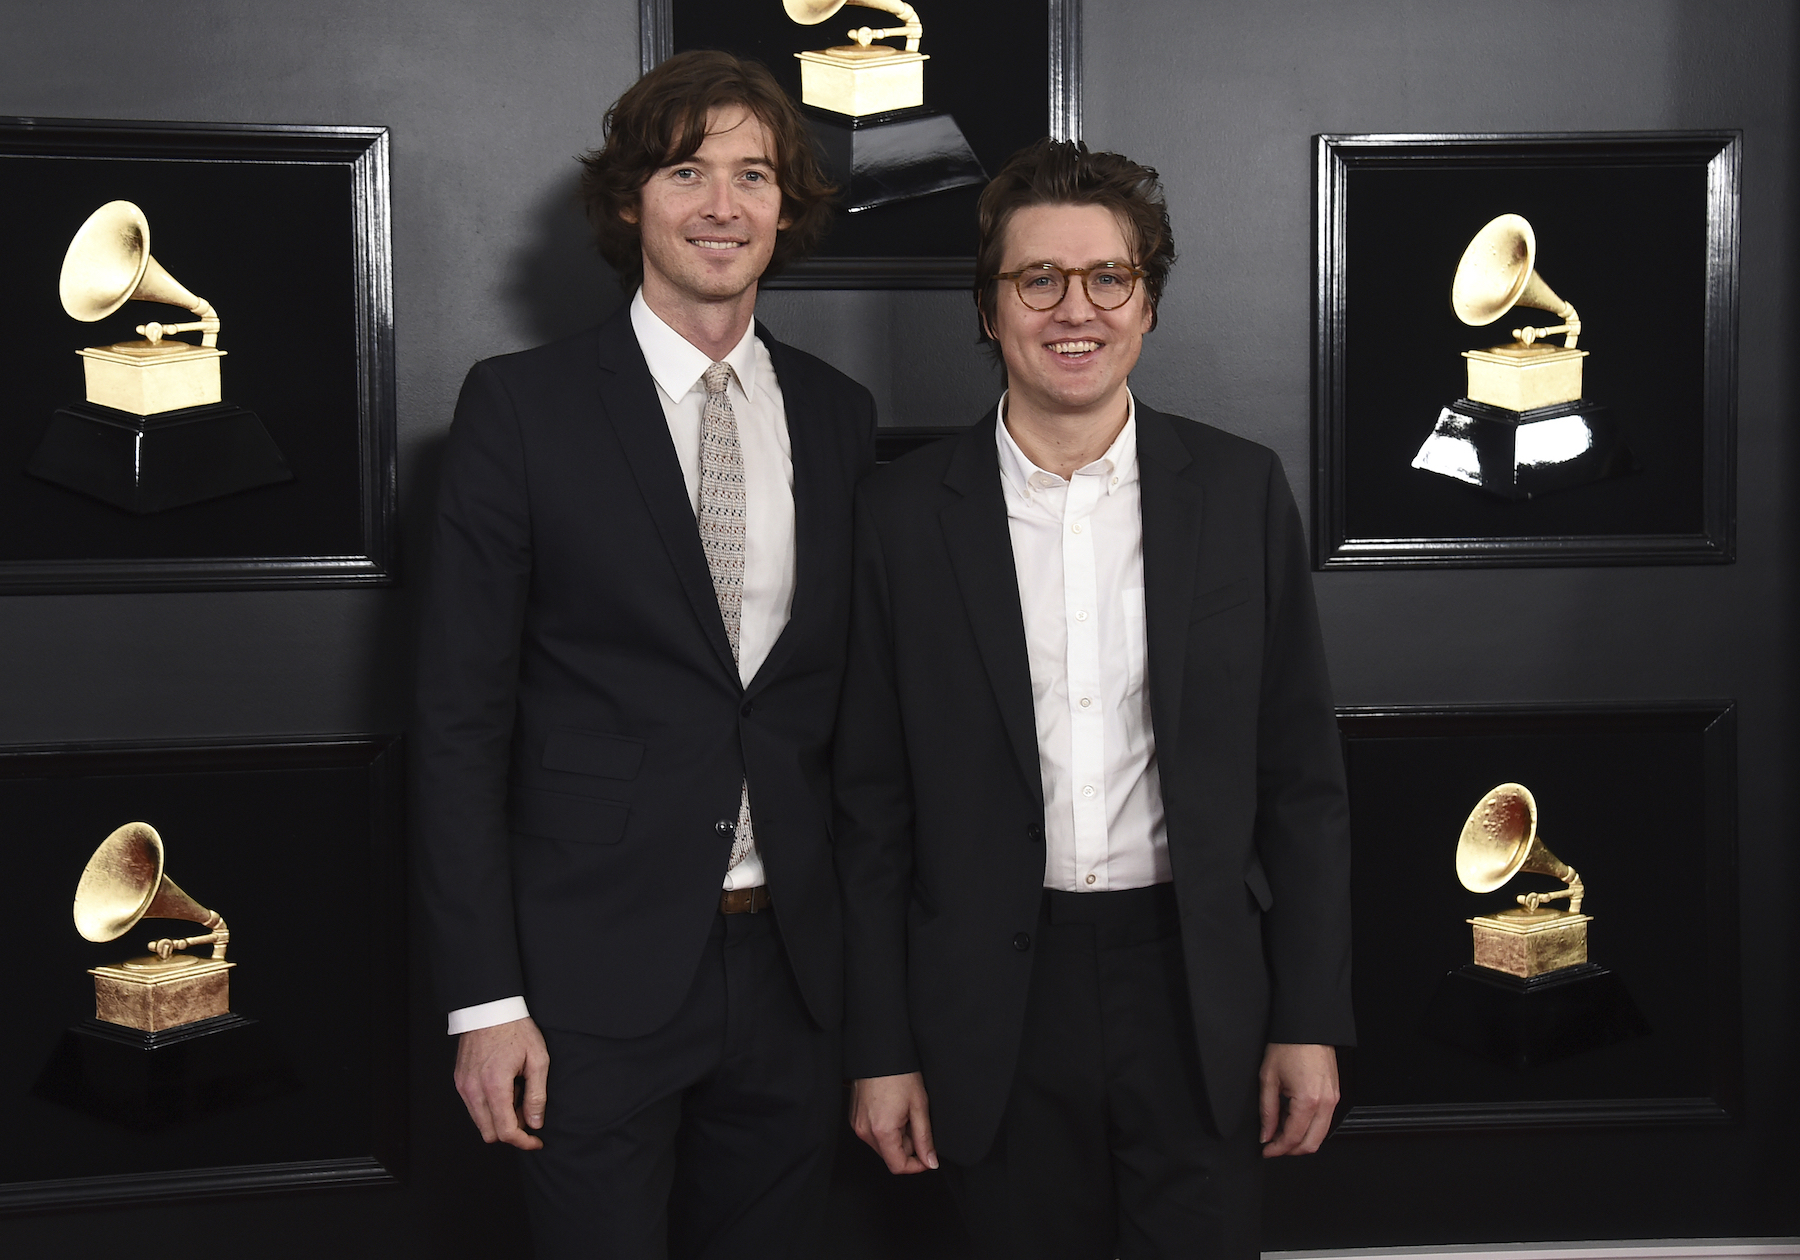 <div class='meta'><div class='origin-logo' data-origin='AP'></div><span class='caption-text' data-credit='Jordan Strauss/Invision/AP'>Joey Ryan, left, and Kenneth Pattengale of &#34;The Milk Carton Kids&#34; arrive at the 61st annual Grammy Awards at the Staples Center on Sunday, Feb. 10, 2019, in Los Angeles.</span></div>